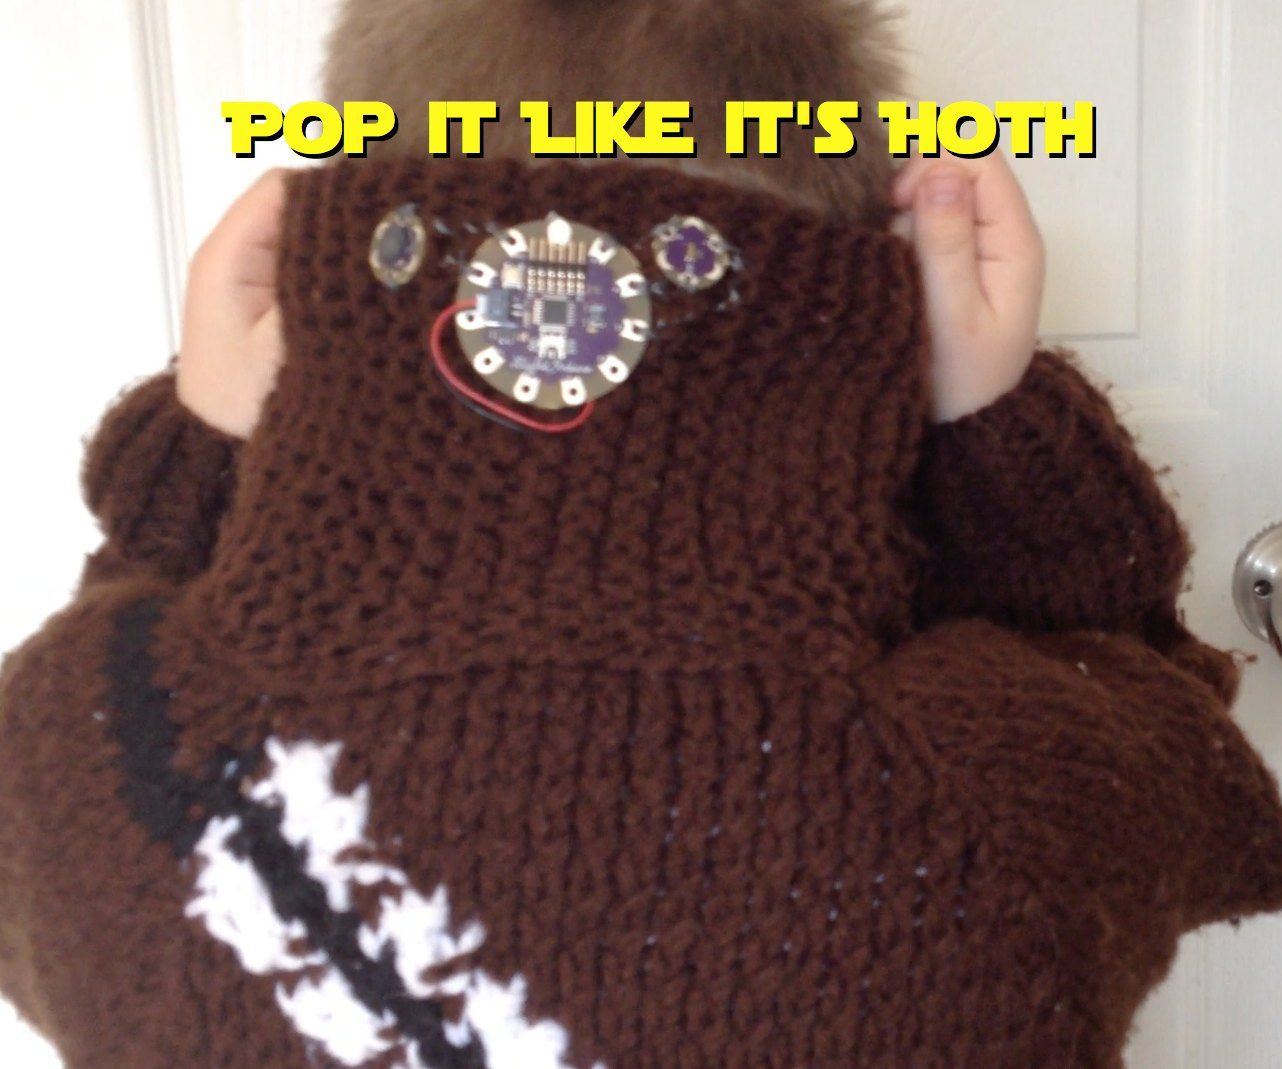 Light Sensor Star Wars Coat (Pop It Like It's Hoth)